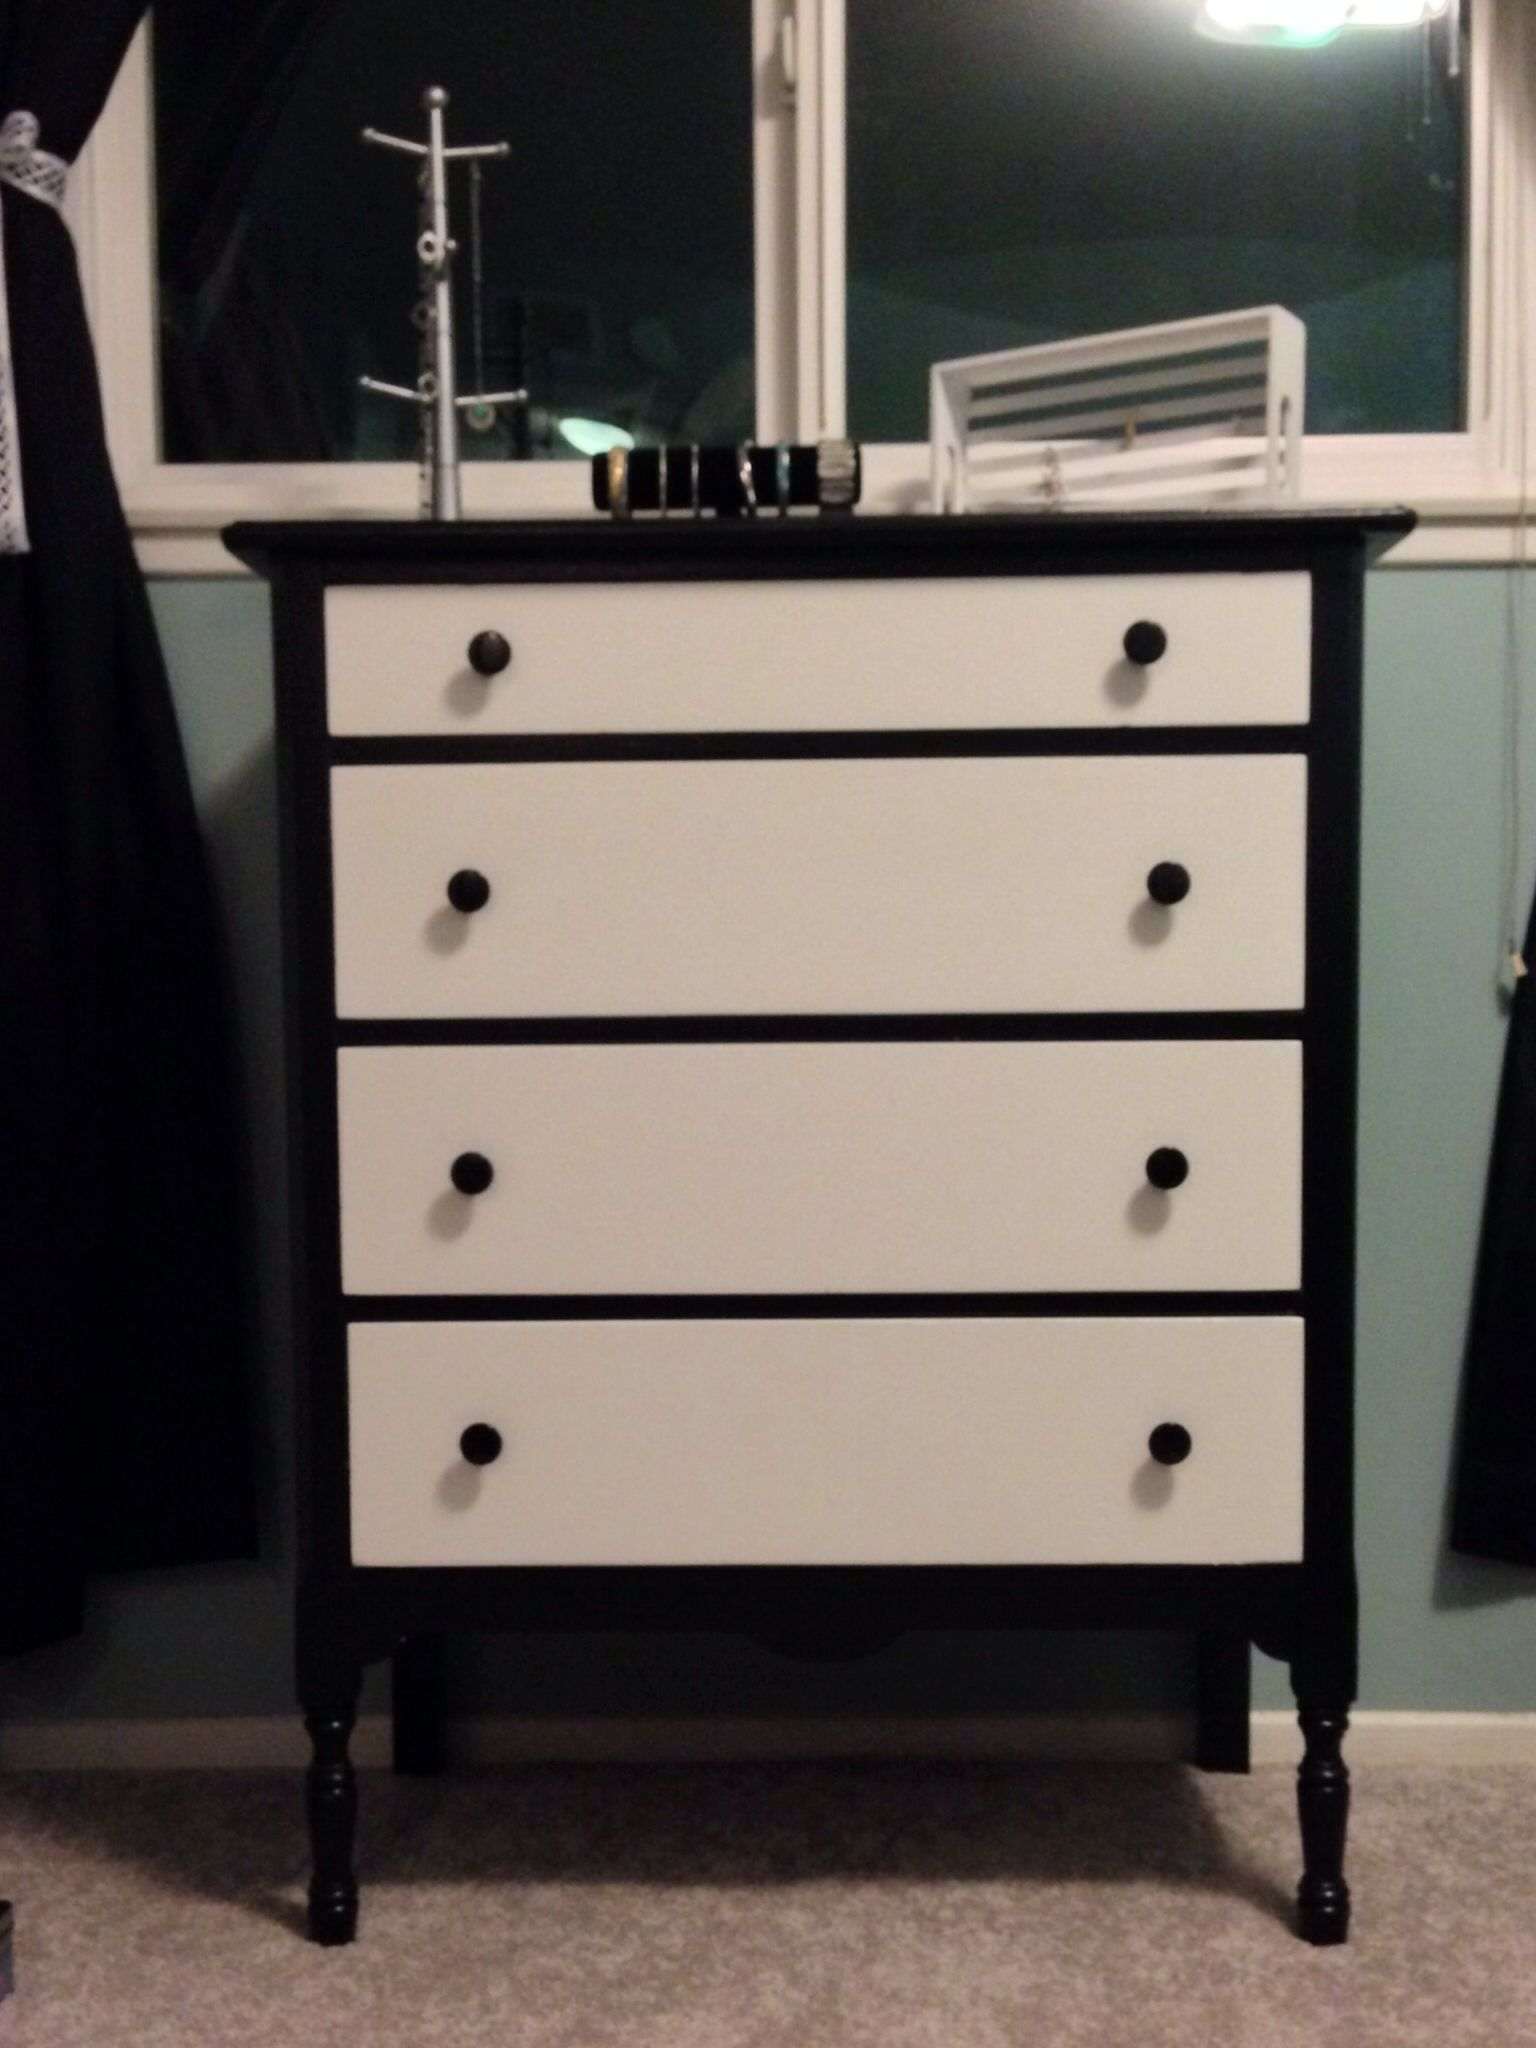 Black And White Dresser Things I Could Put In My House Dresser Bedroom Black White Dresser